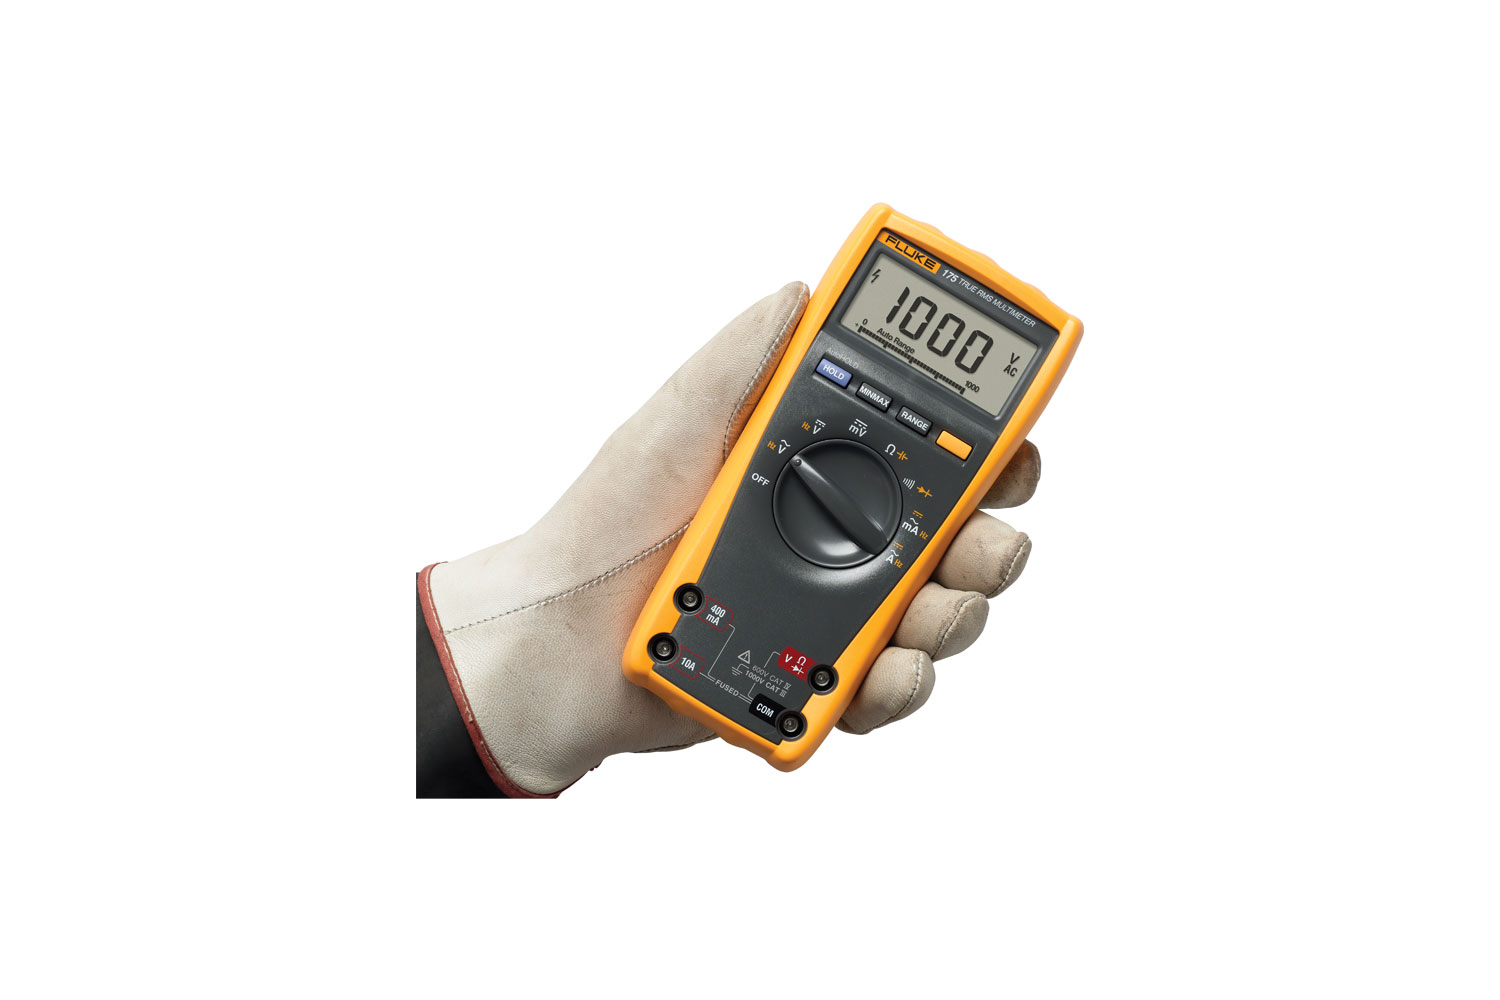 Fluke 175 True Rms Digital Multimeter The First Circuit Has One Cell An Ammeter Reading 05a And A Lamp